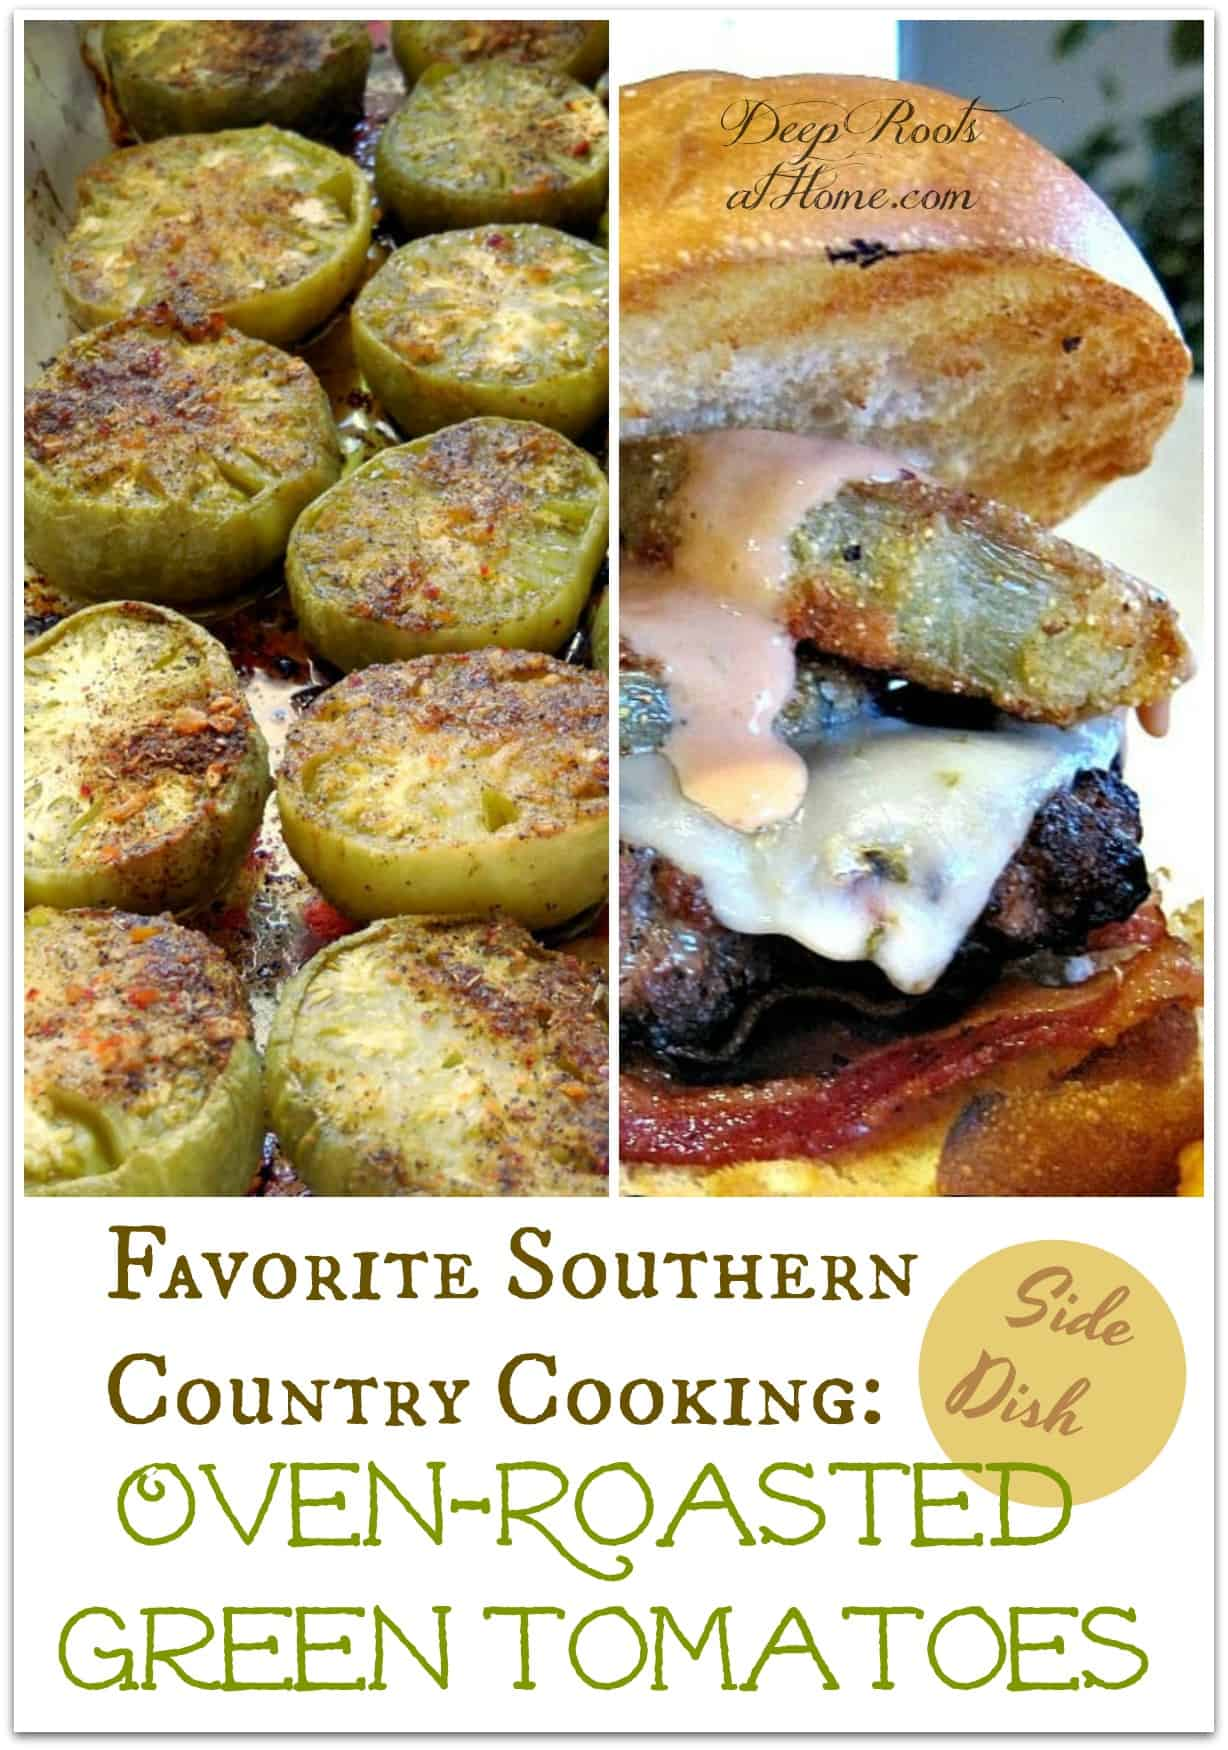 Favorite Southern Country Cooking: Oven-Roasted Green Tomatoes